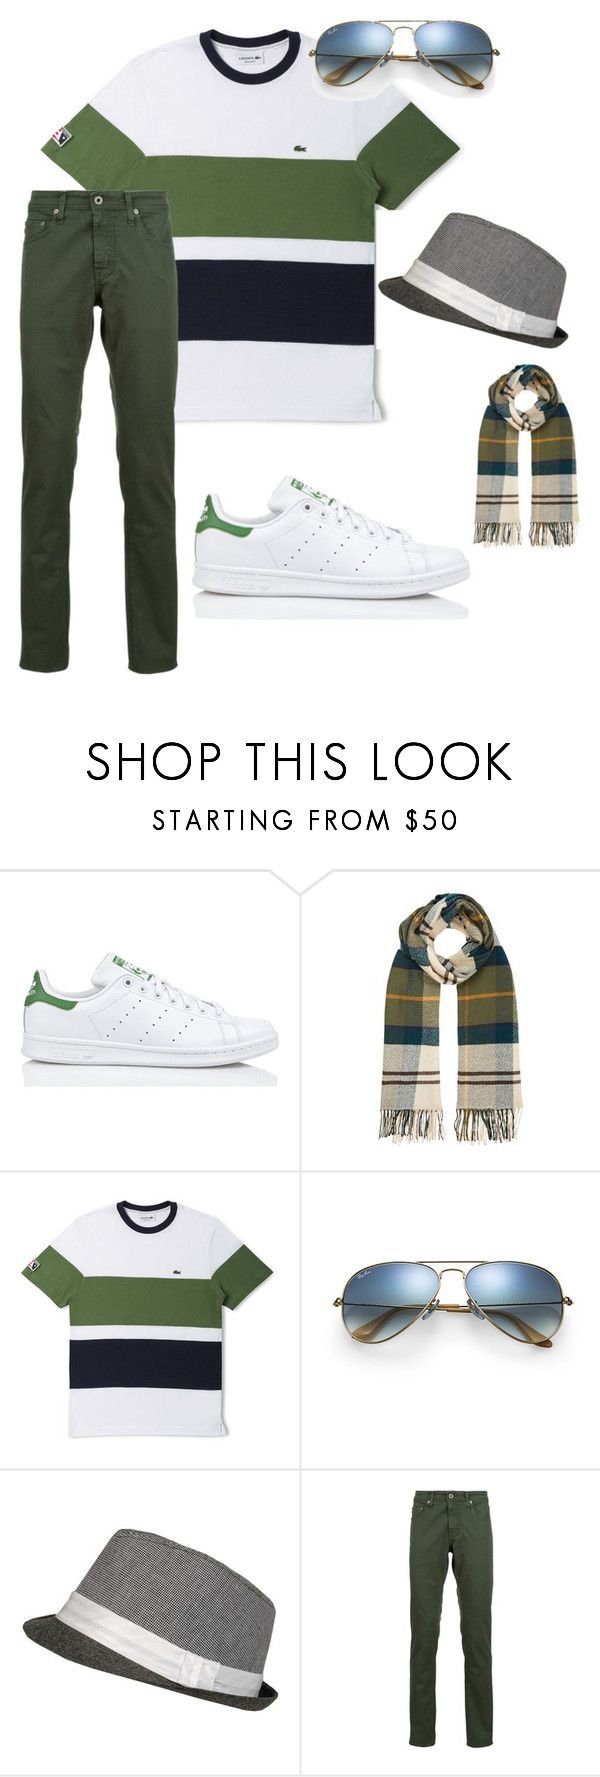 """""""Date out"""" by stylizia ❤ liked on Polyvore featuring adidas, Barbour, Lacoste, Ray-Ban, AG Adriano Goldschmied, men's fashion and menswear"""